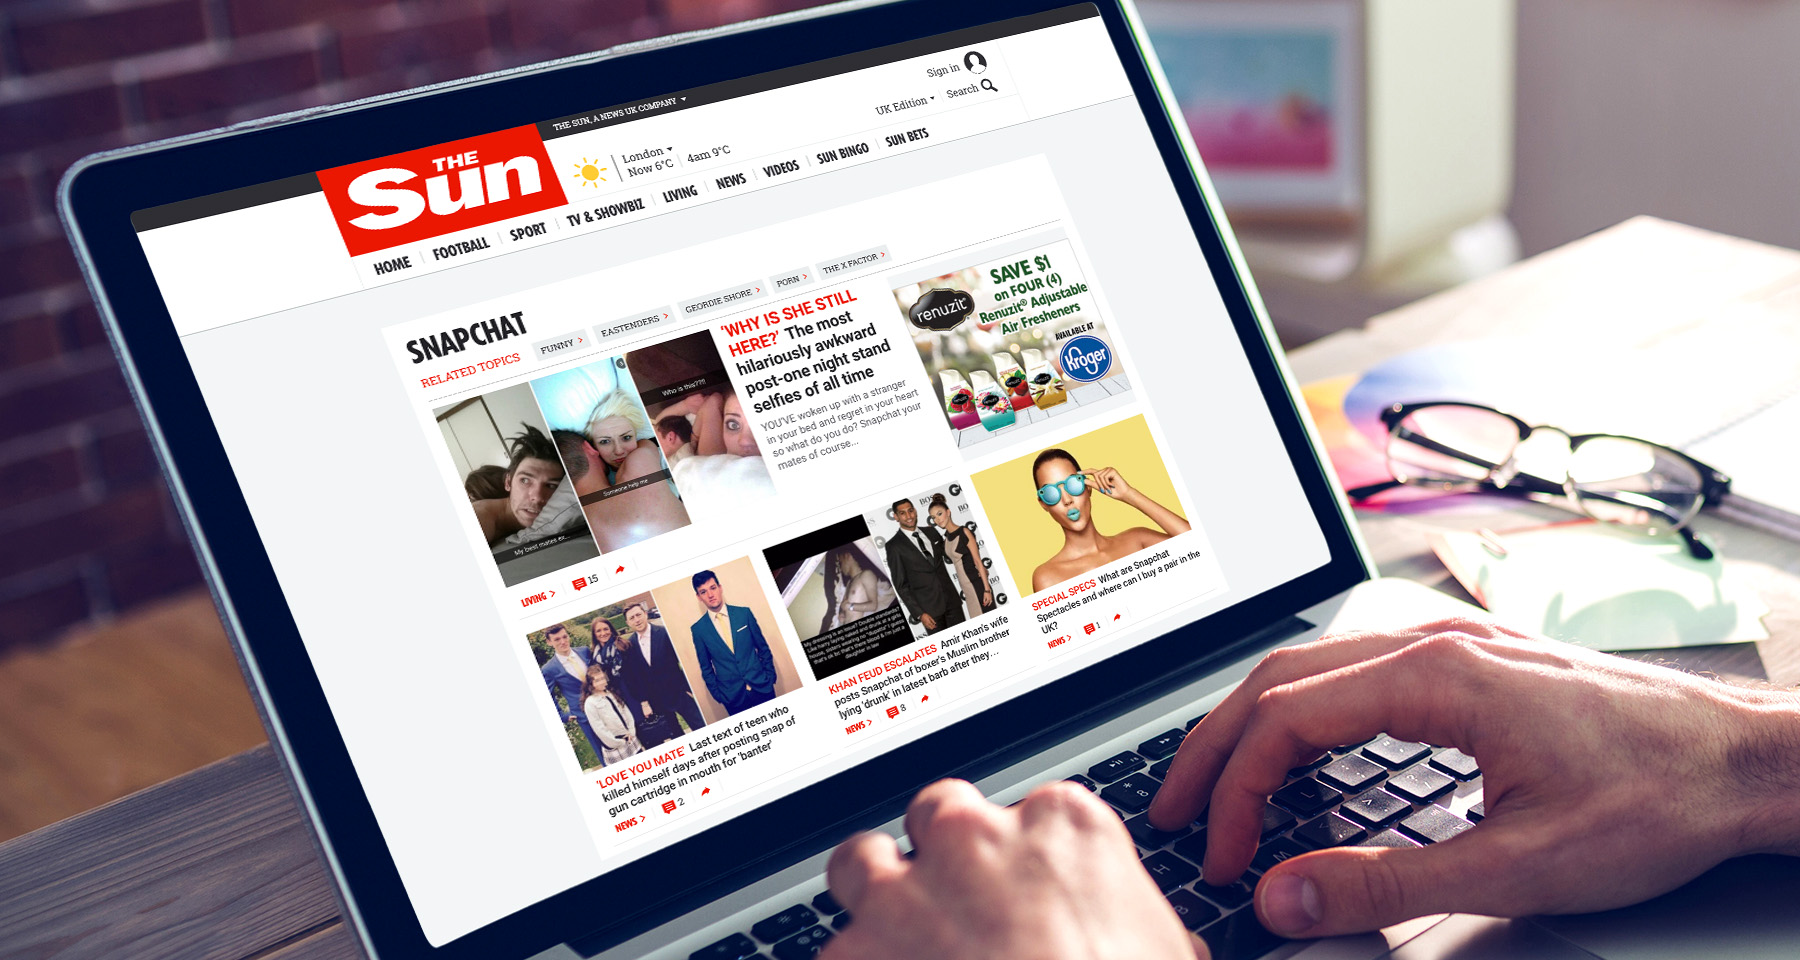 Sun revamps digital strategy, more than doubles online traffic